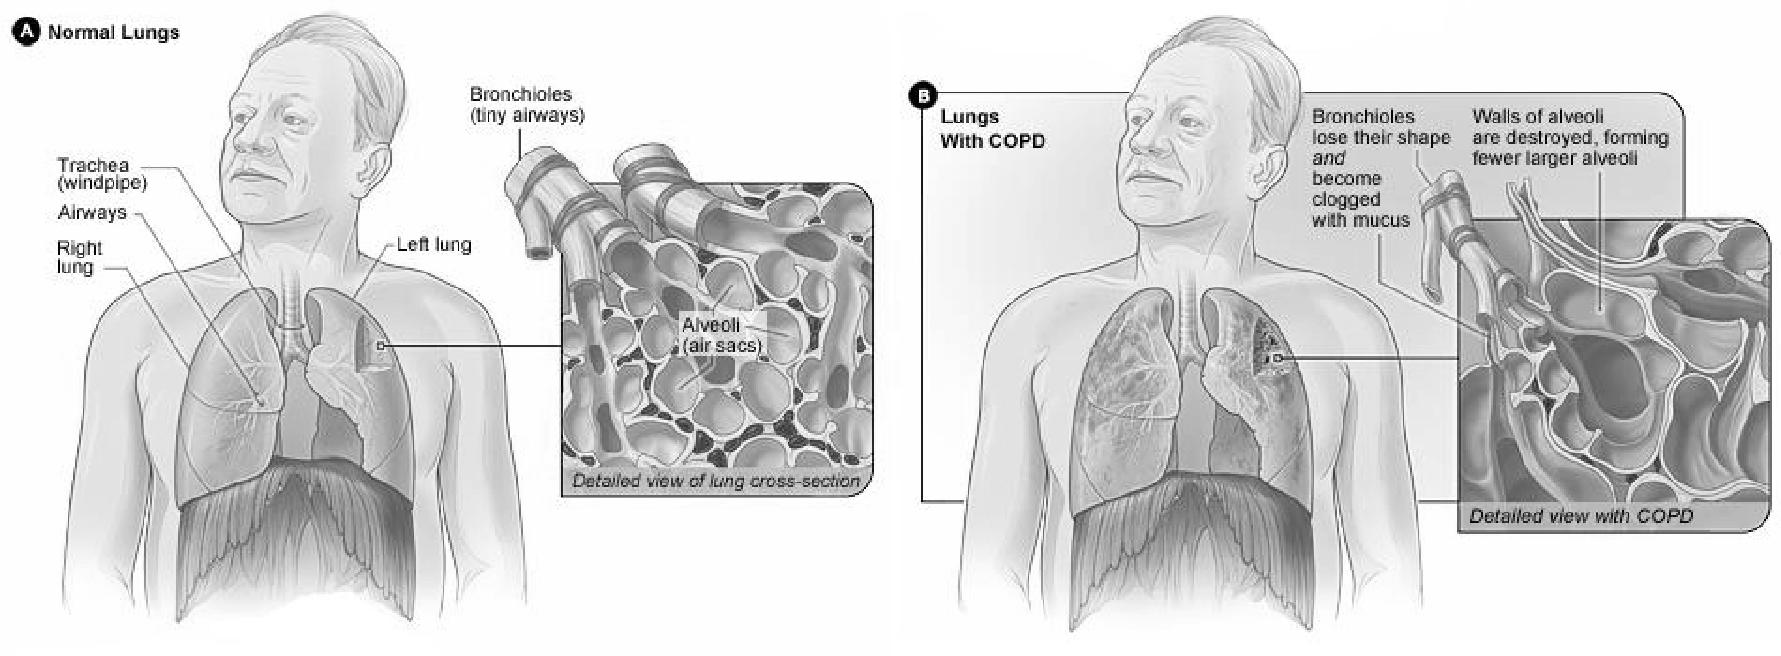 Limit the impacts of COPD